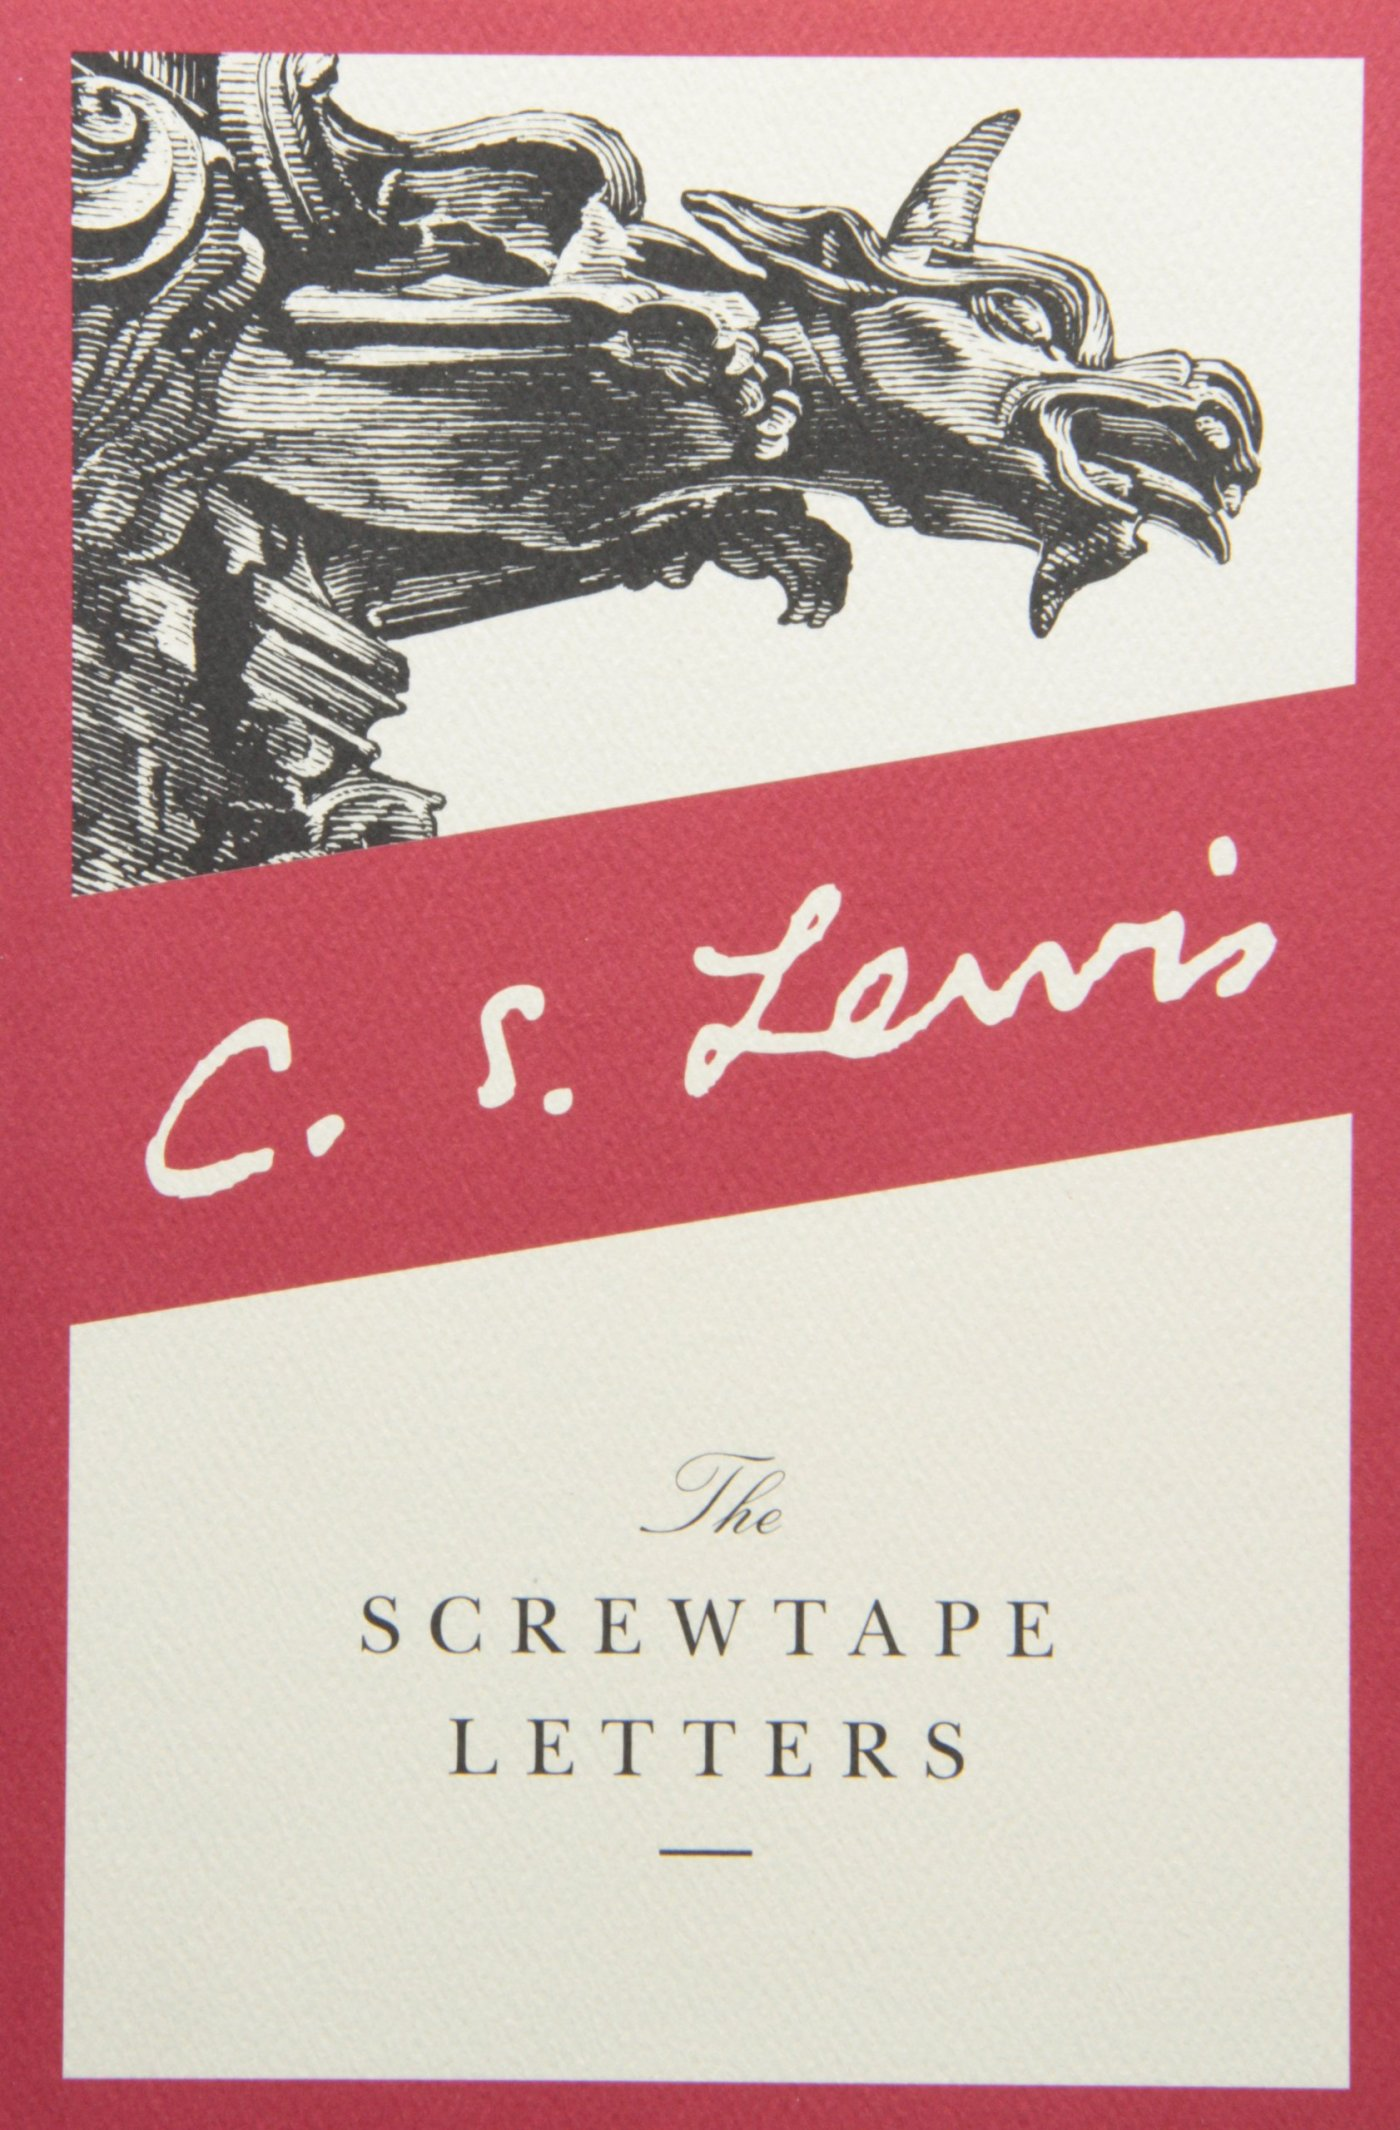 the screwtape letters and subjective relativism His most famous works, including mere christianity and the screwtape letters, are appreciated for their humor and defense of the christian faith however, in recent years, his work the abolition of man has not received attention like his other, more accessible writings.